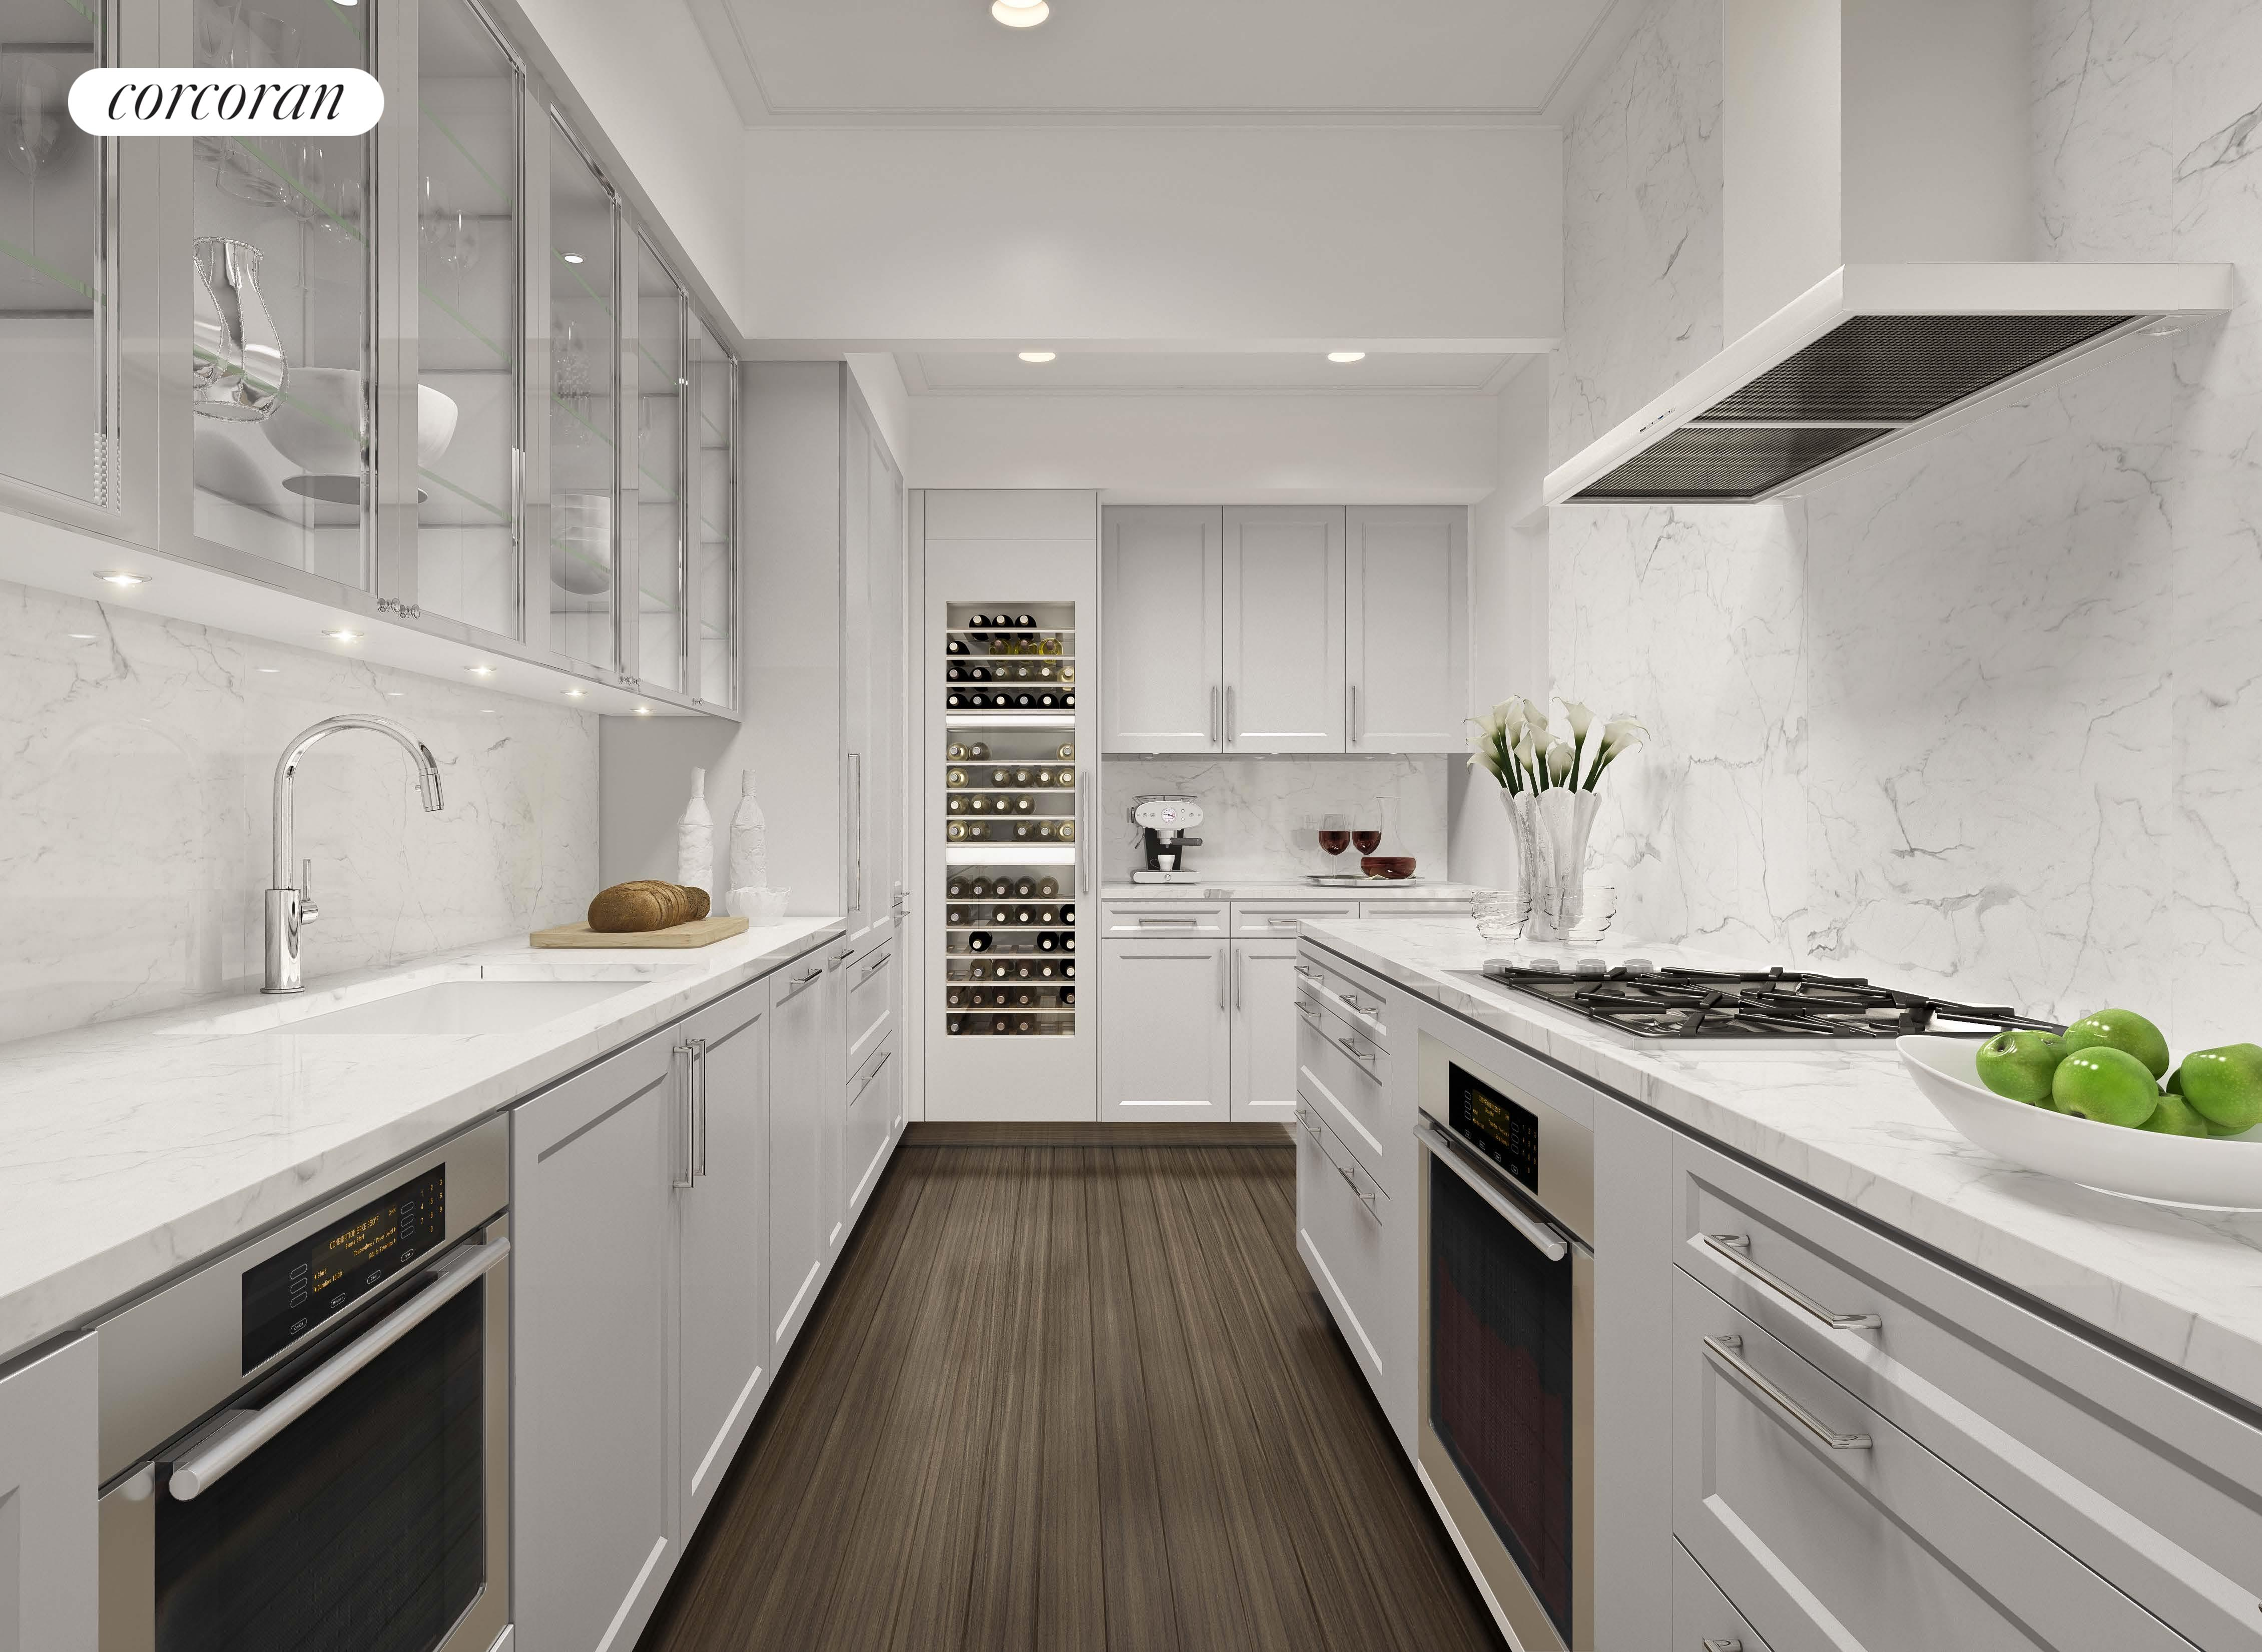 22 Central Park South, 6TH FLOOR, Kitchen